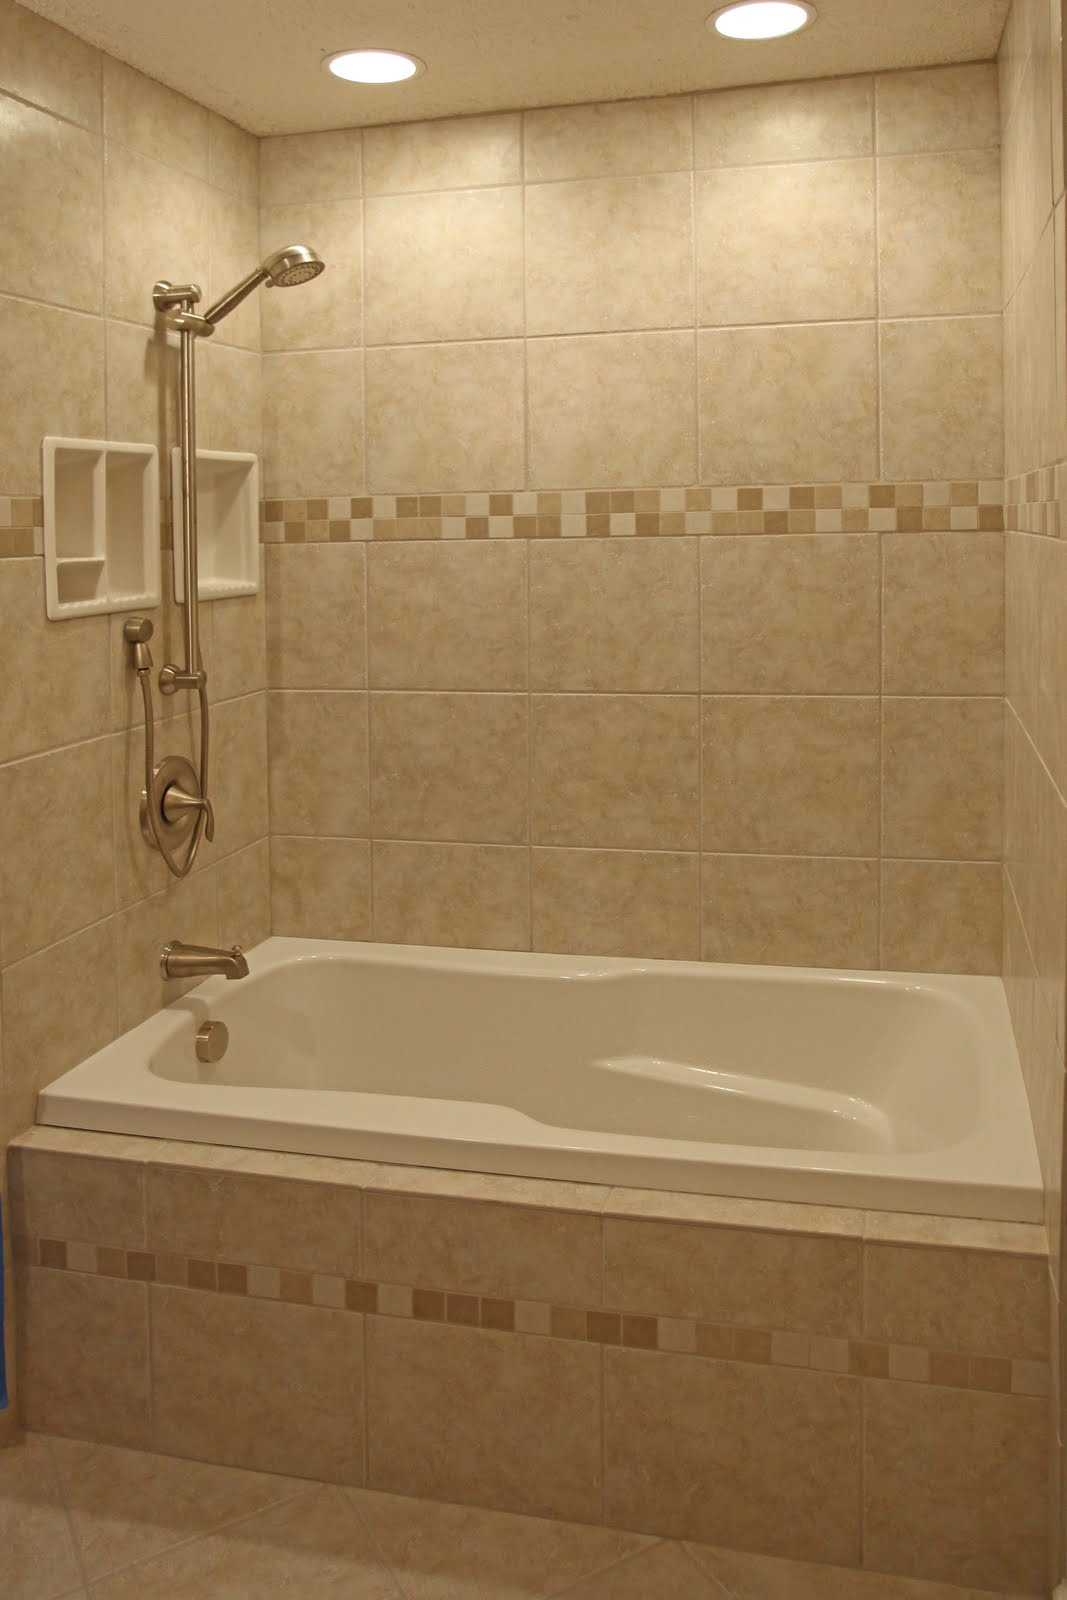 Bathroom remodeling design ideas tile shower niches for Bath remodel pictures